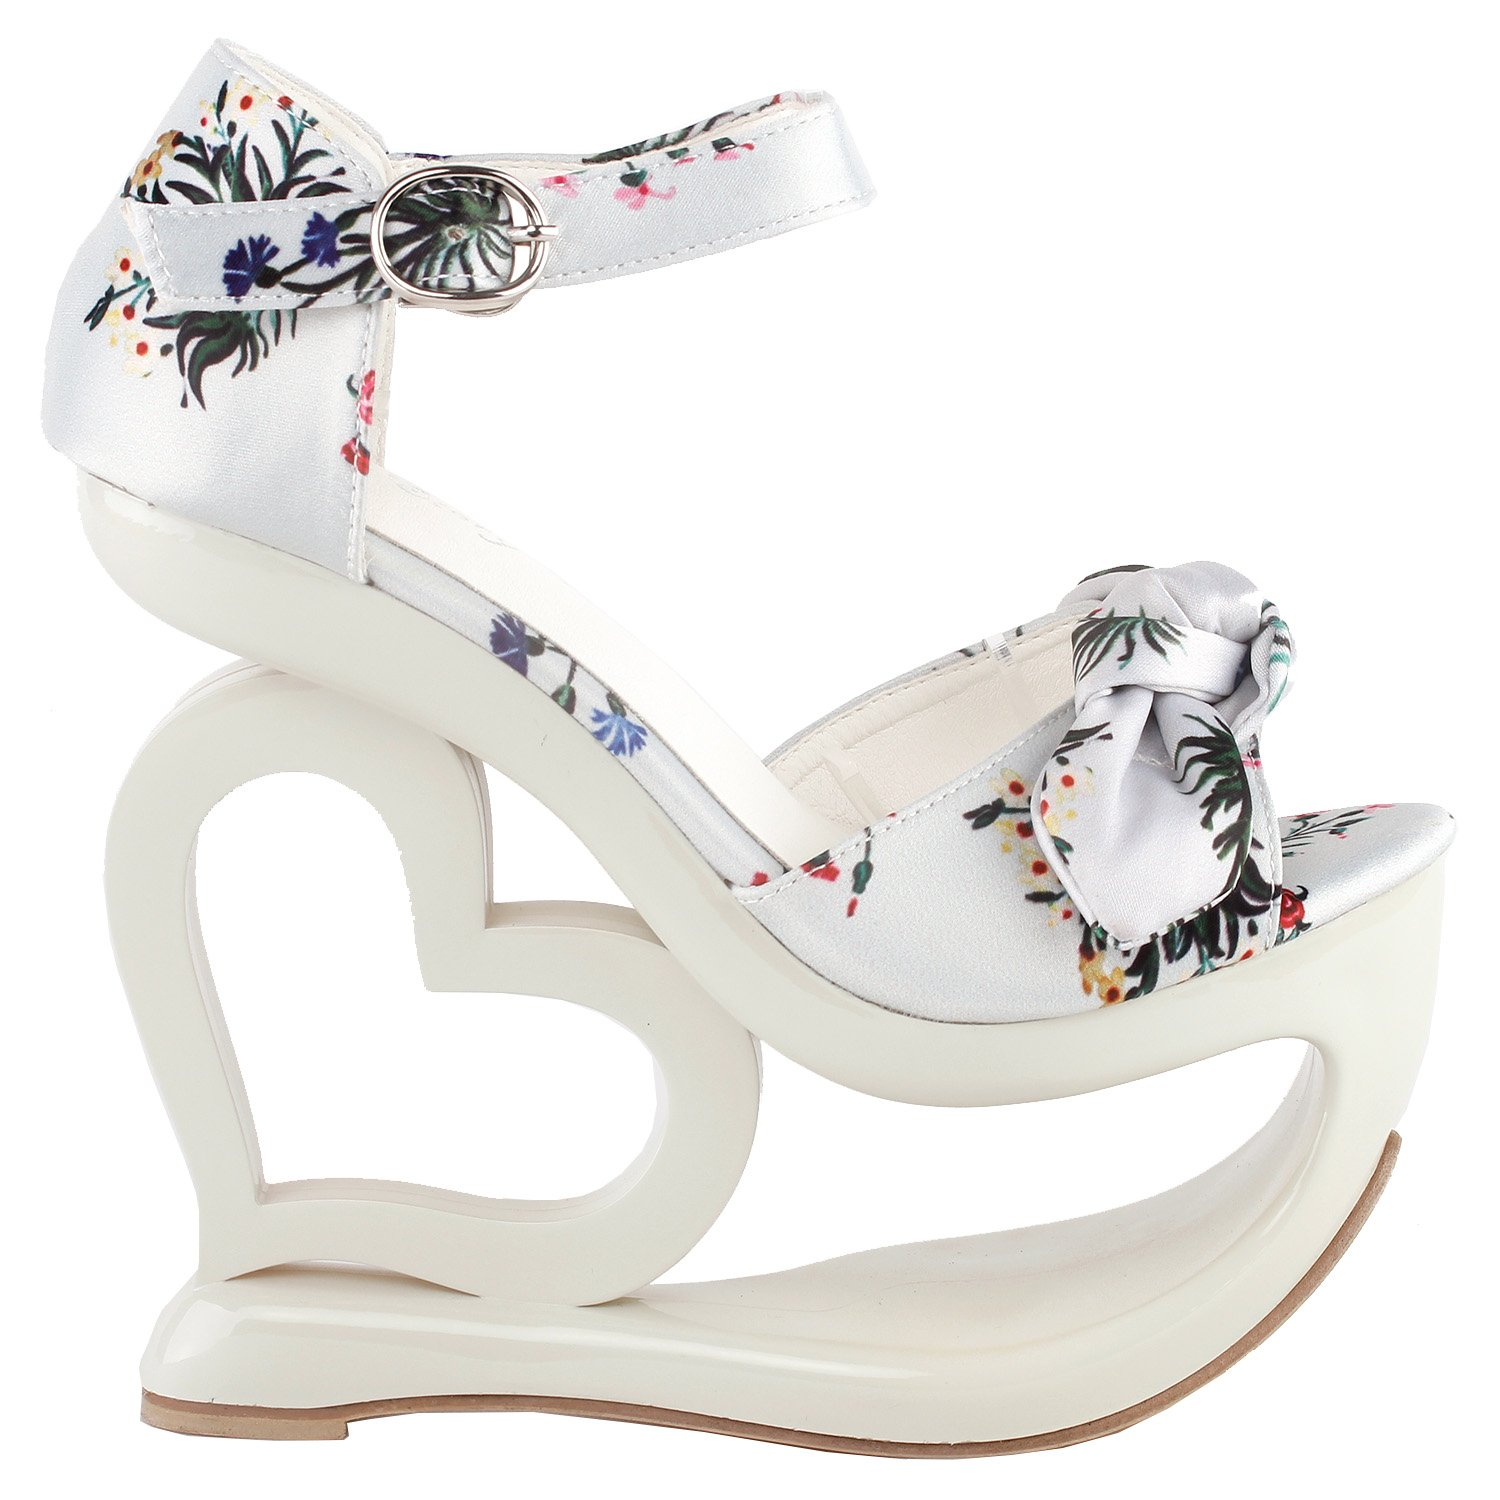 87b2fcfd118d Show Story Elegant Floral Print Bow Ankle Strap Heart Heel Wedge Bridesmaid  Wedding Sandals